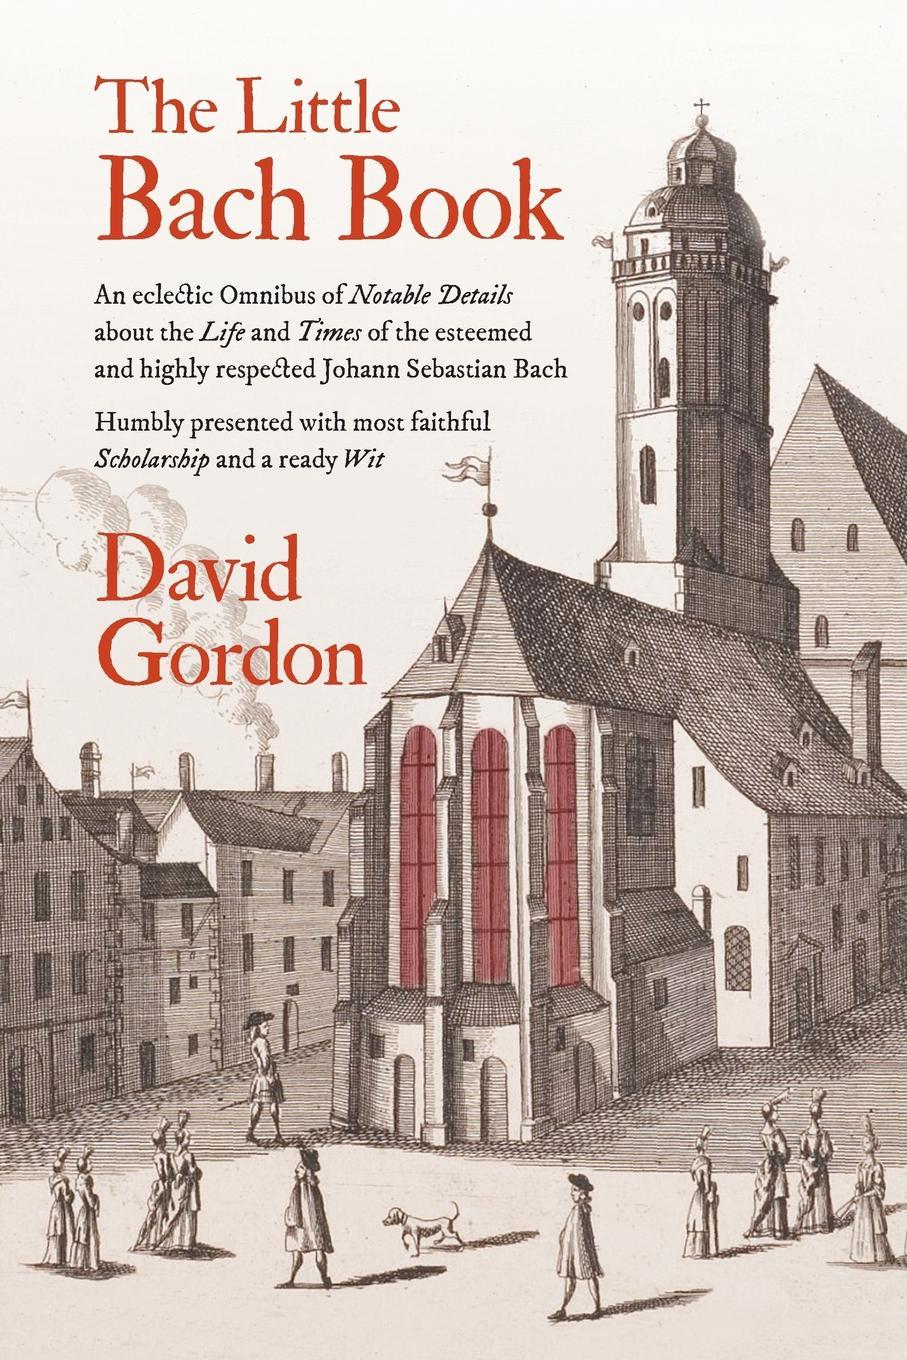 David J Gordon The Little Bach Book. An eclectic Omnibus of Notable Details about the Life and Times of the esteemed and highly respected Johann Sebastian Bach bach